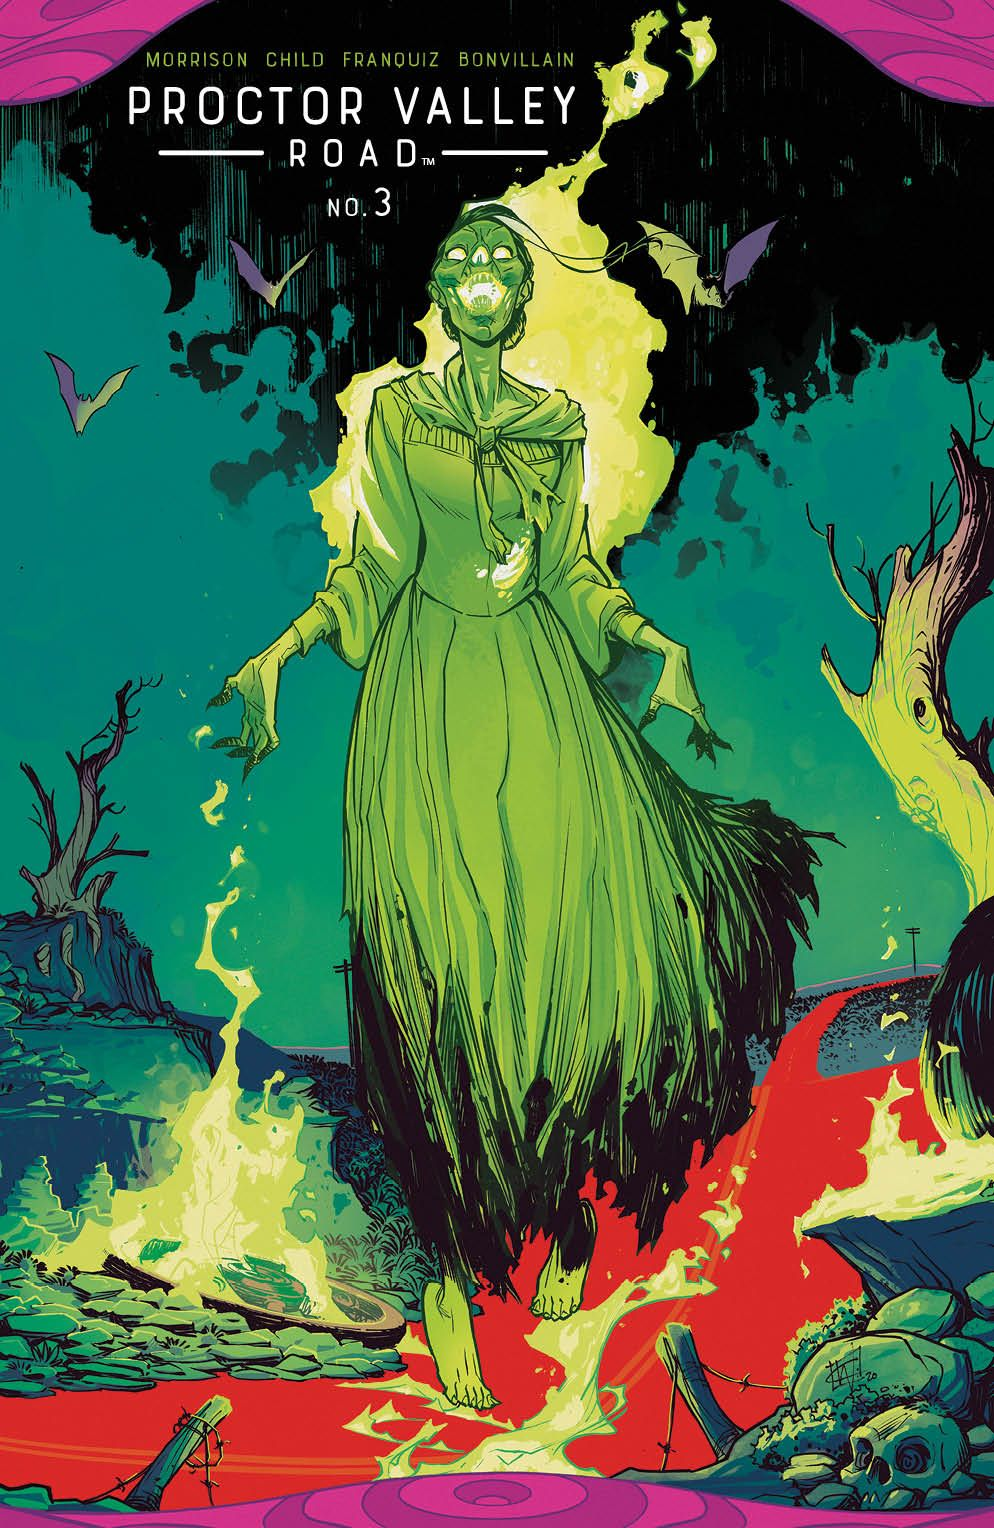 ProctorValleyRoad_003_Cover_B_Variant ComicList Previews: PROCTOR VALLEY ROAD #3 (OF 5)